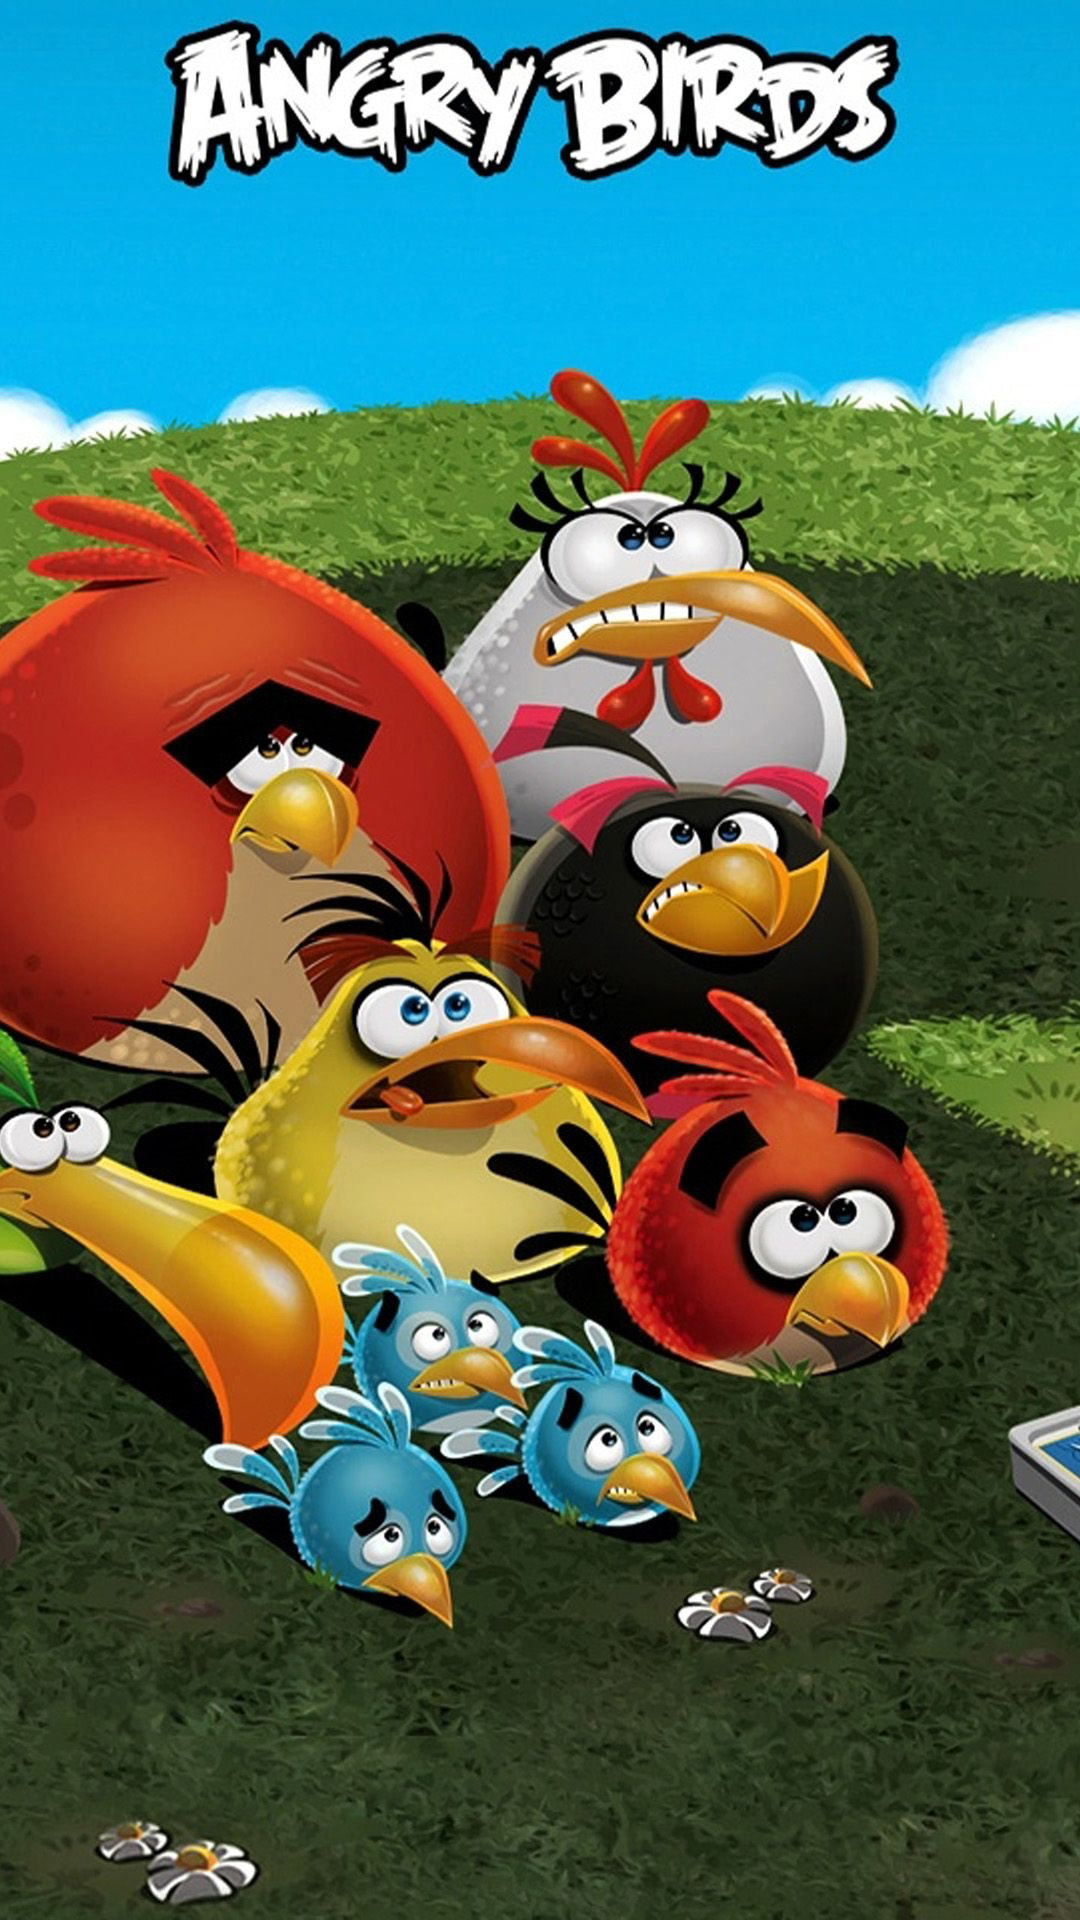 iphone 6 plus angry birds 08 hd wallpaper